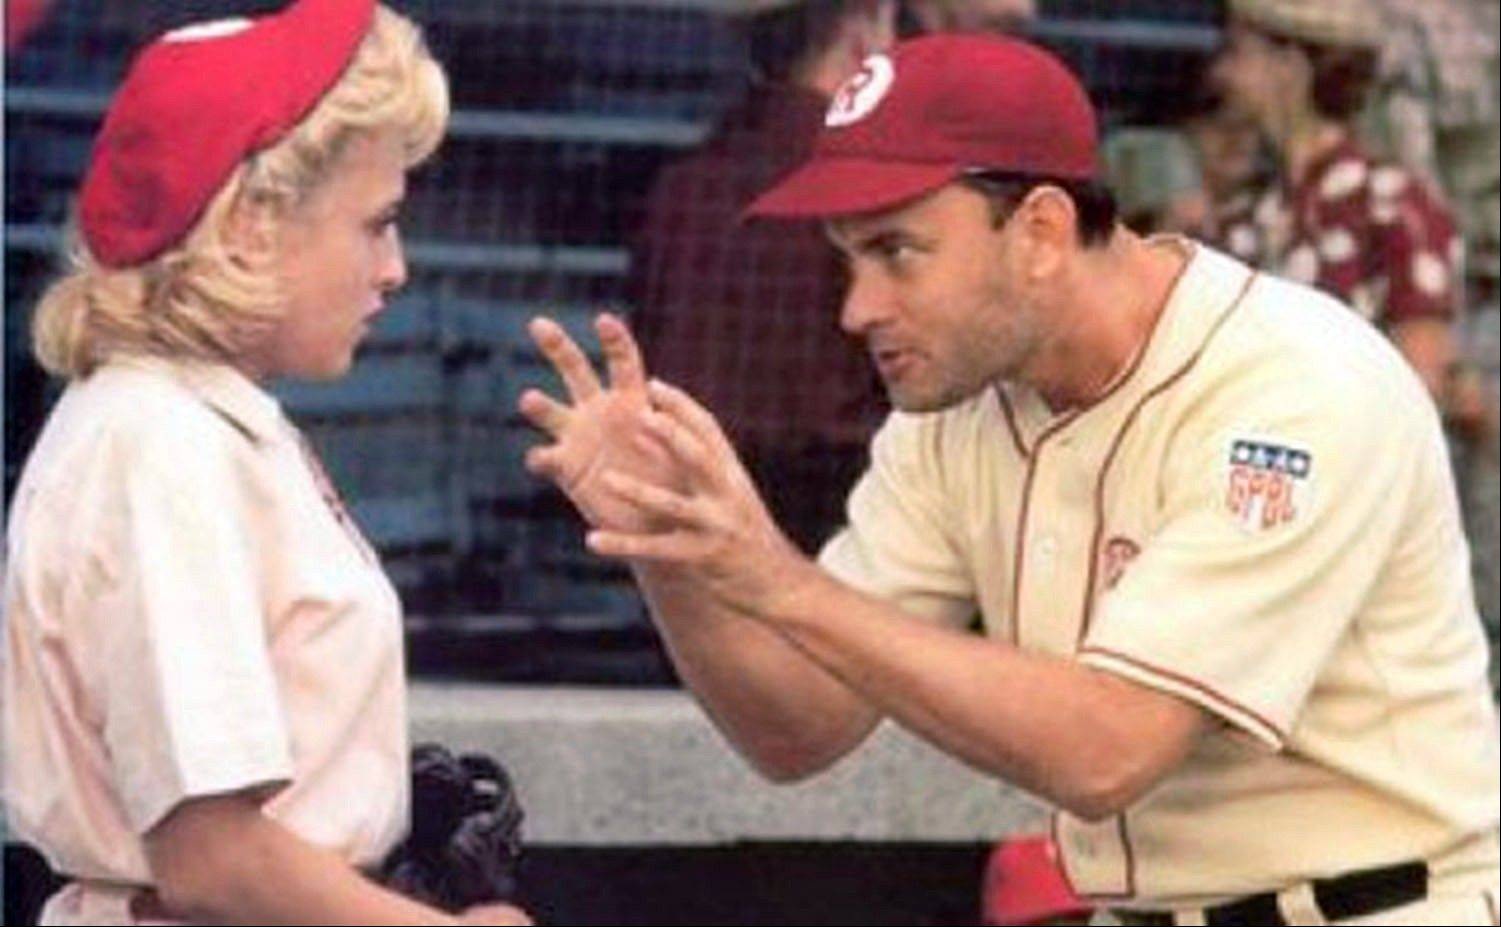 """A League of Their Own"" starring Tom Hanks and Bitty Schram will be inducted into the National Film Registry Wednesday."